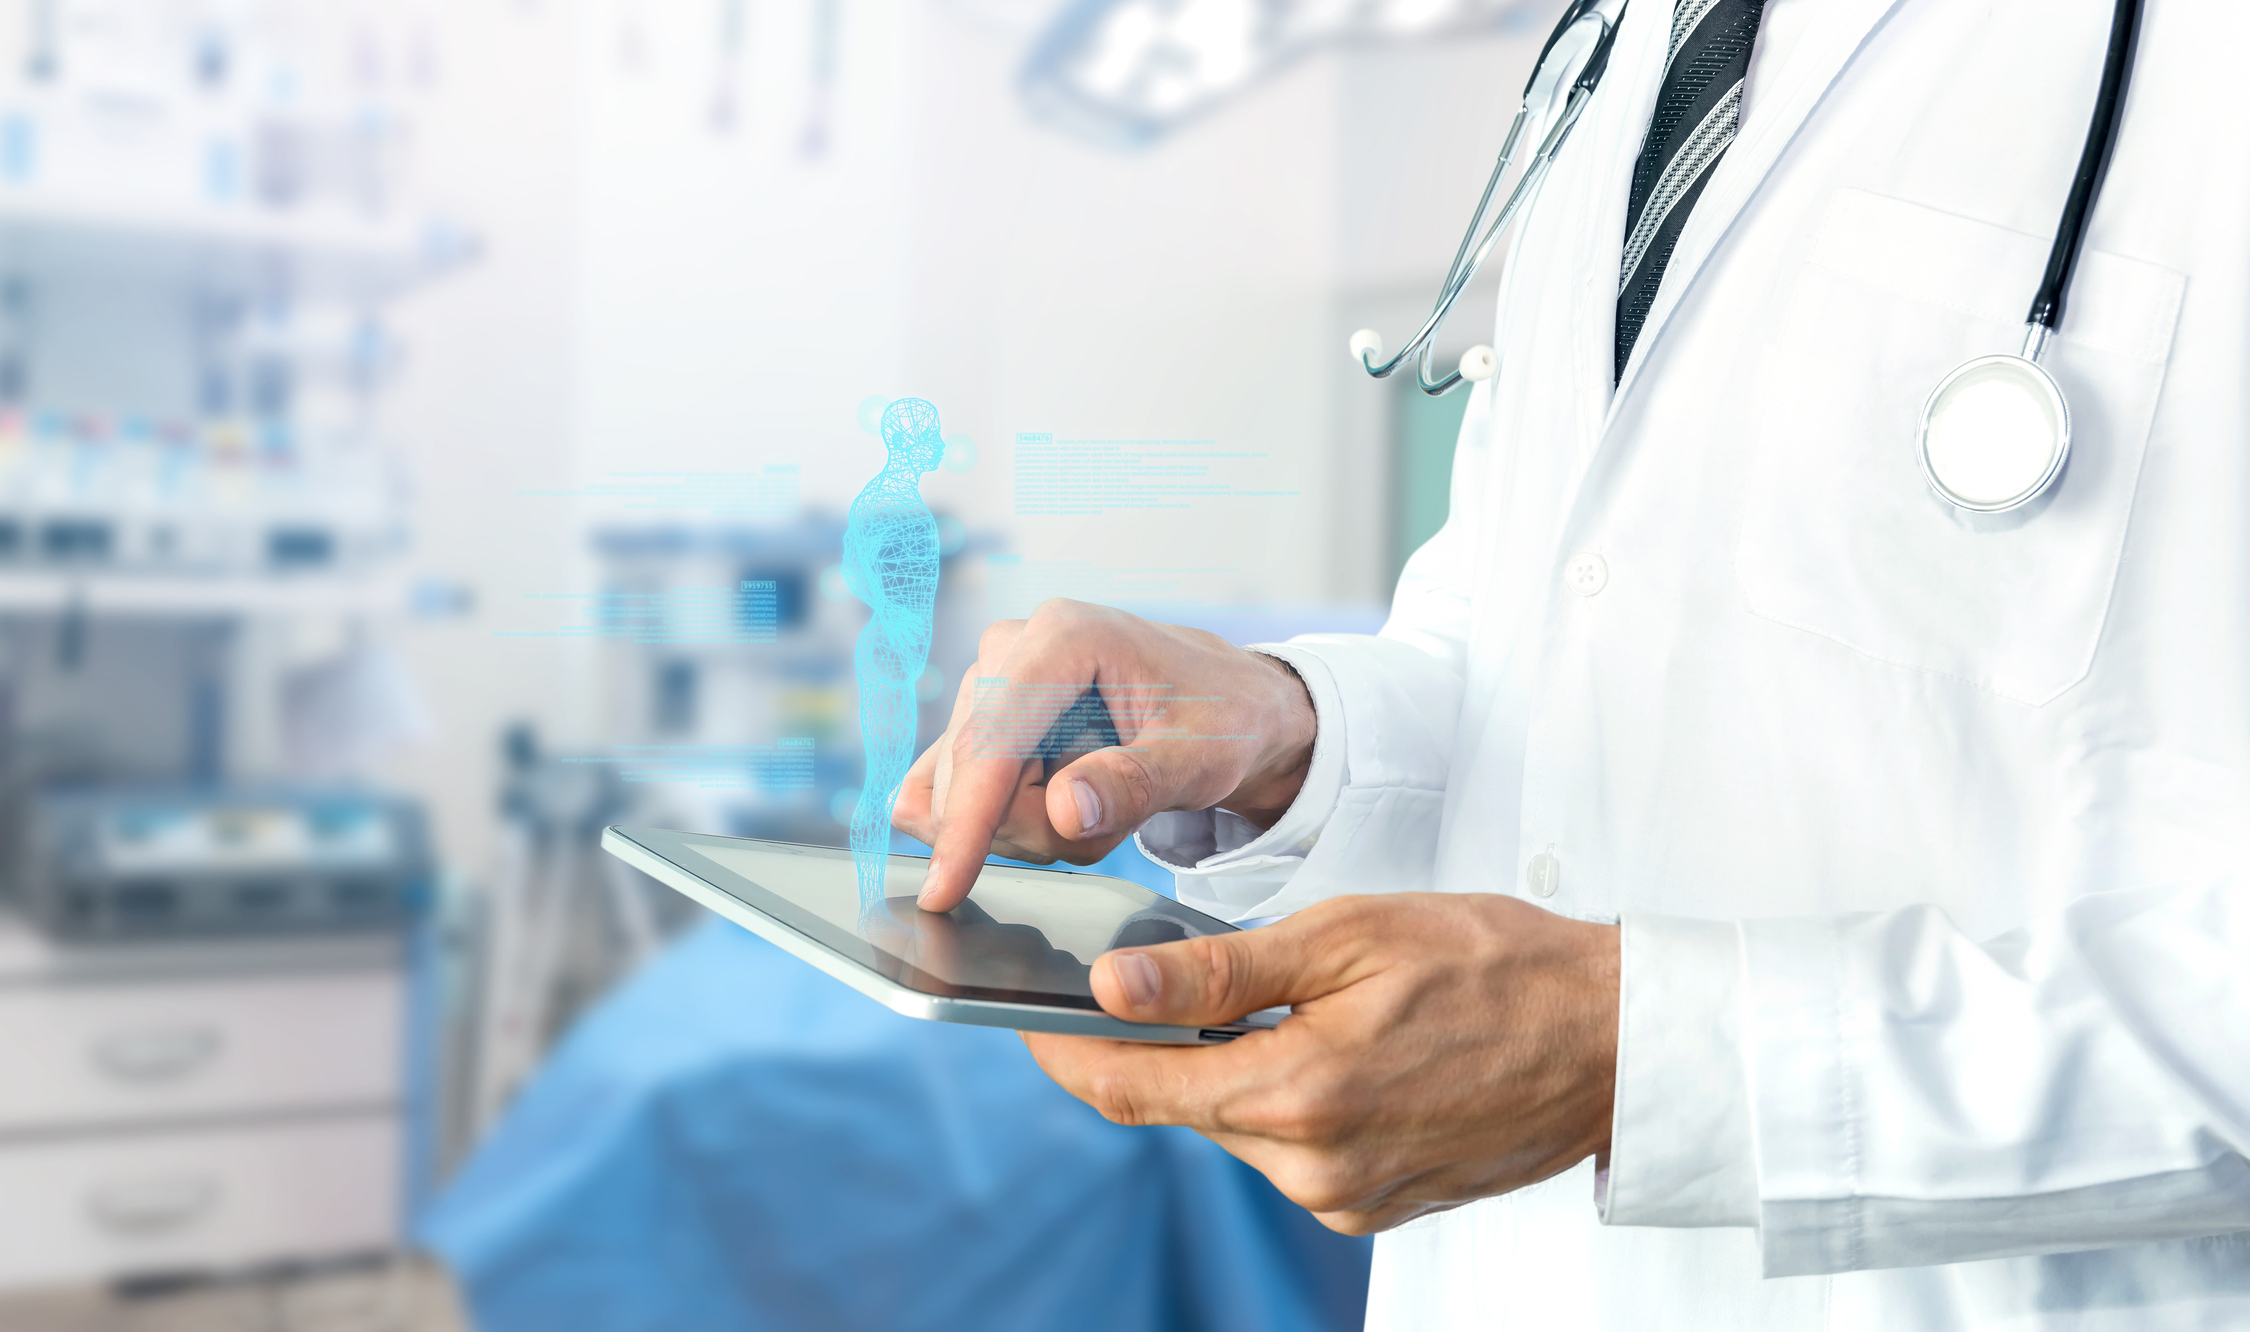 Where Do Humans Fit into the New Digital Workforce in Healthcare?